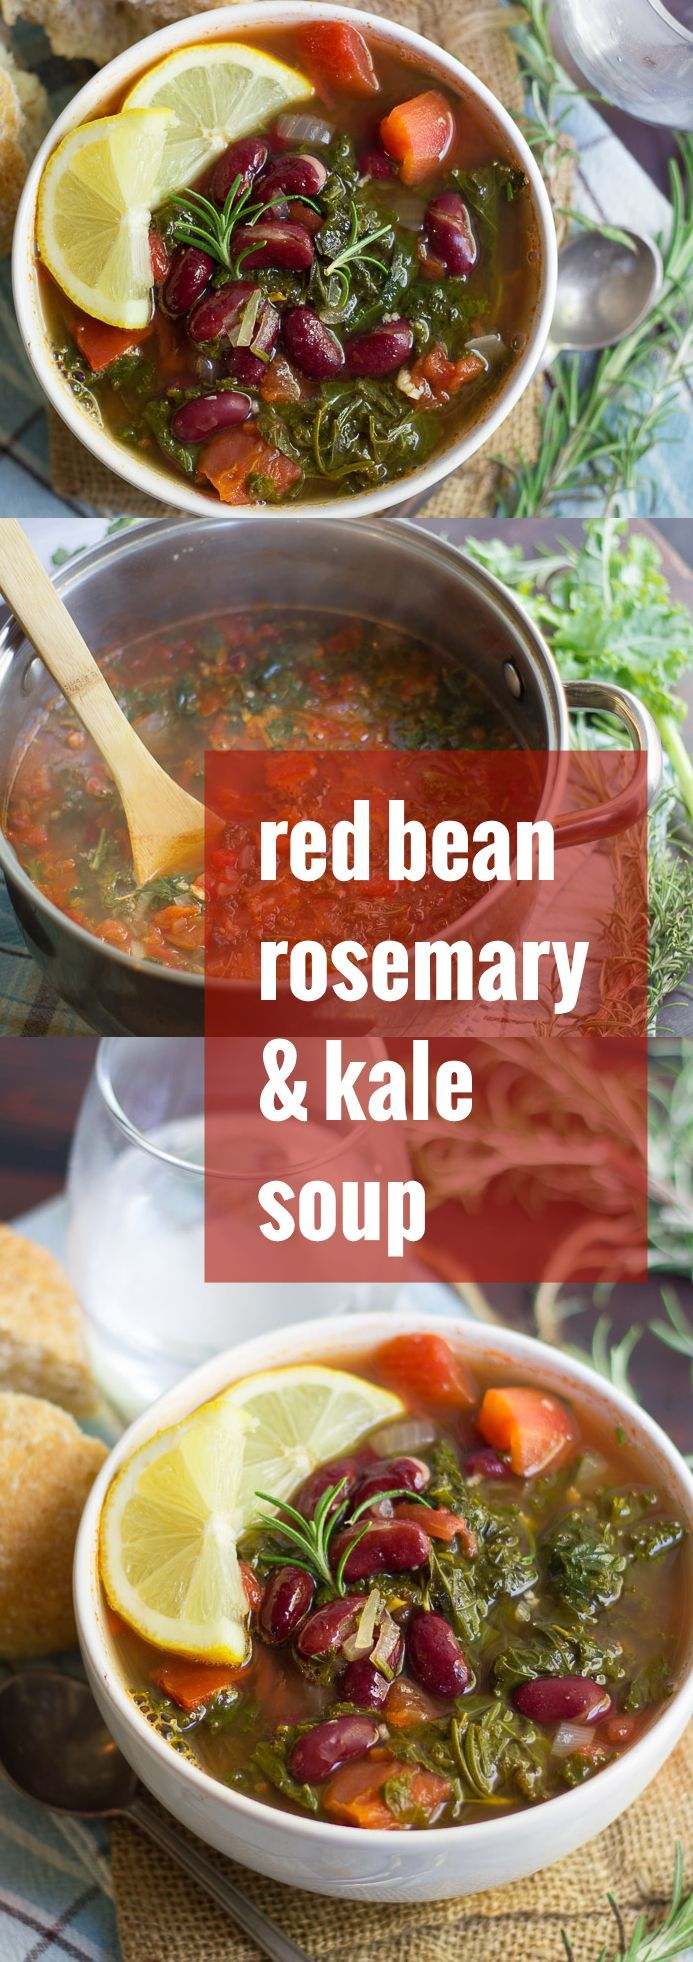 This healthy and hearty red bean kale soup is packed with juicy tomatoes, savory rosemary, and (optionally) seasoned up with a touch of hot sauce.